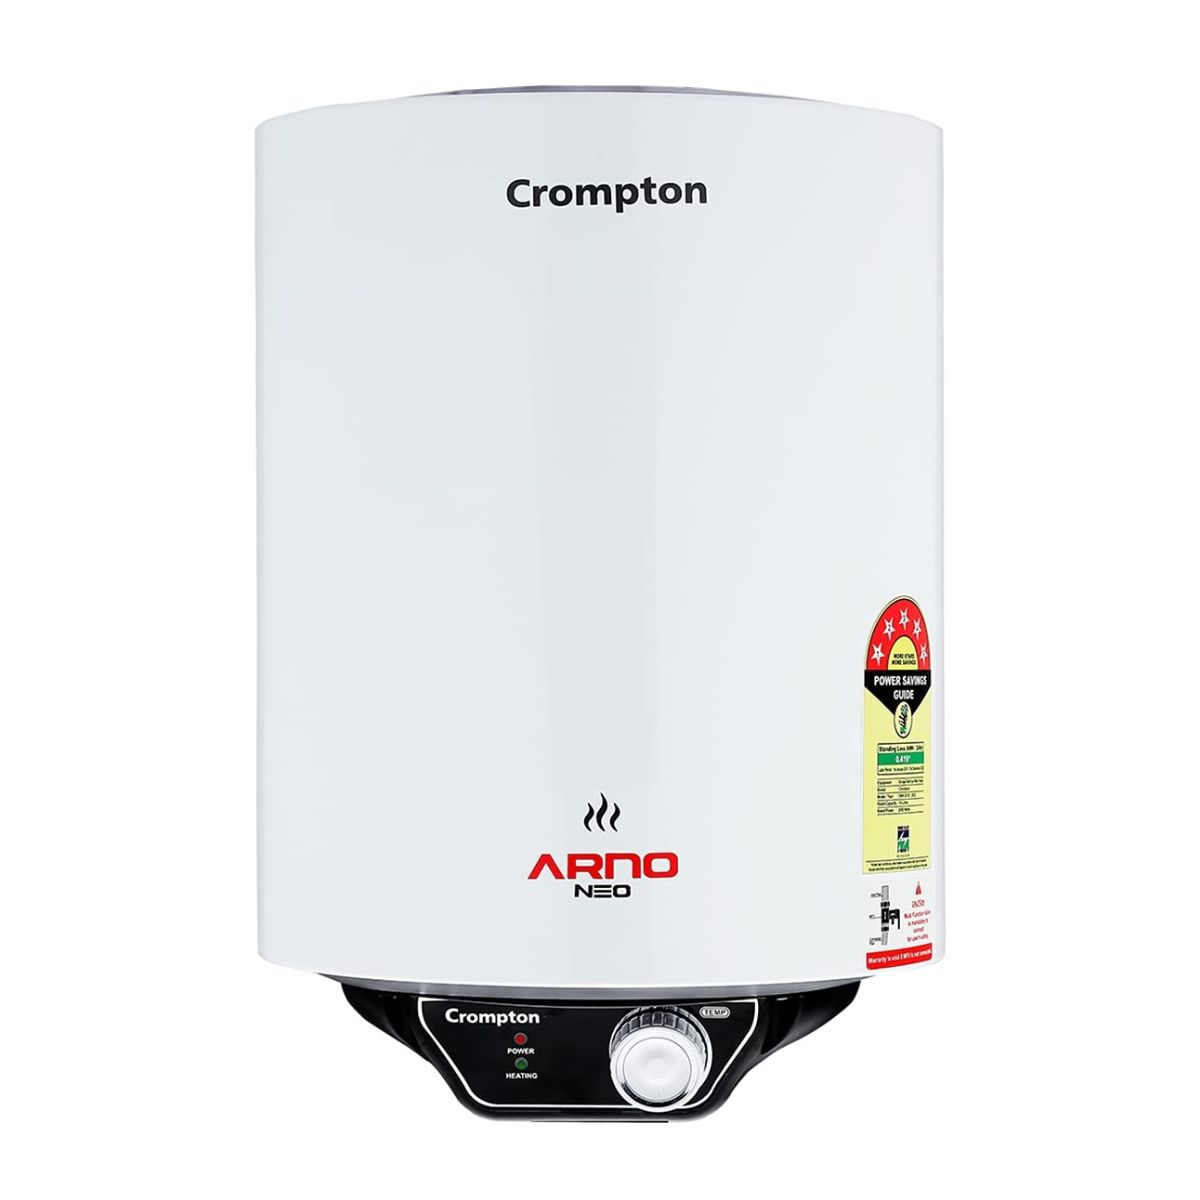 Crompton Arno Neo 15-L 5 Star Rated Storage Water Heater